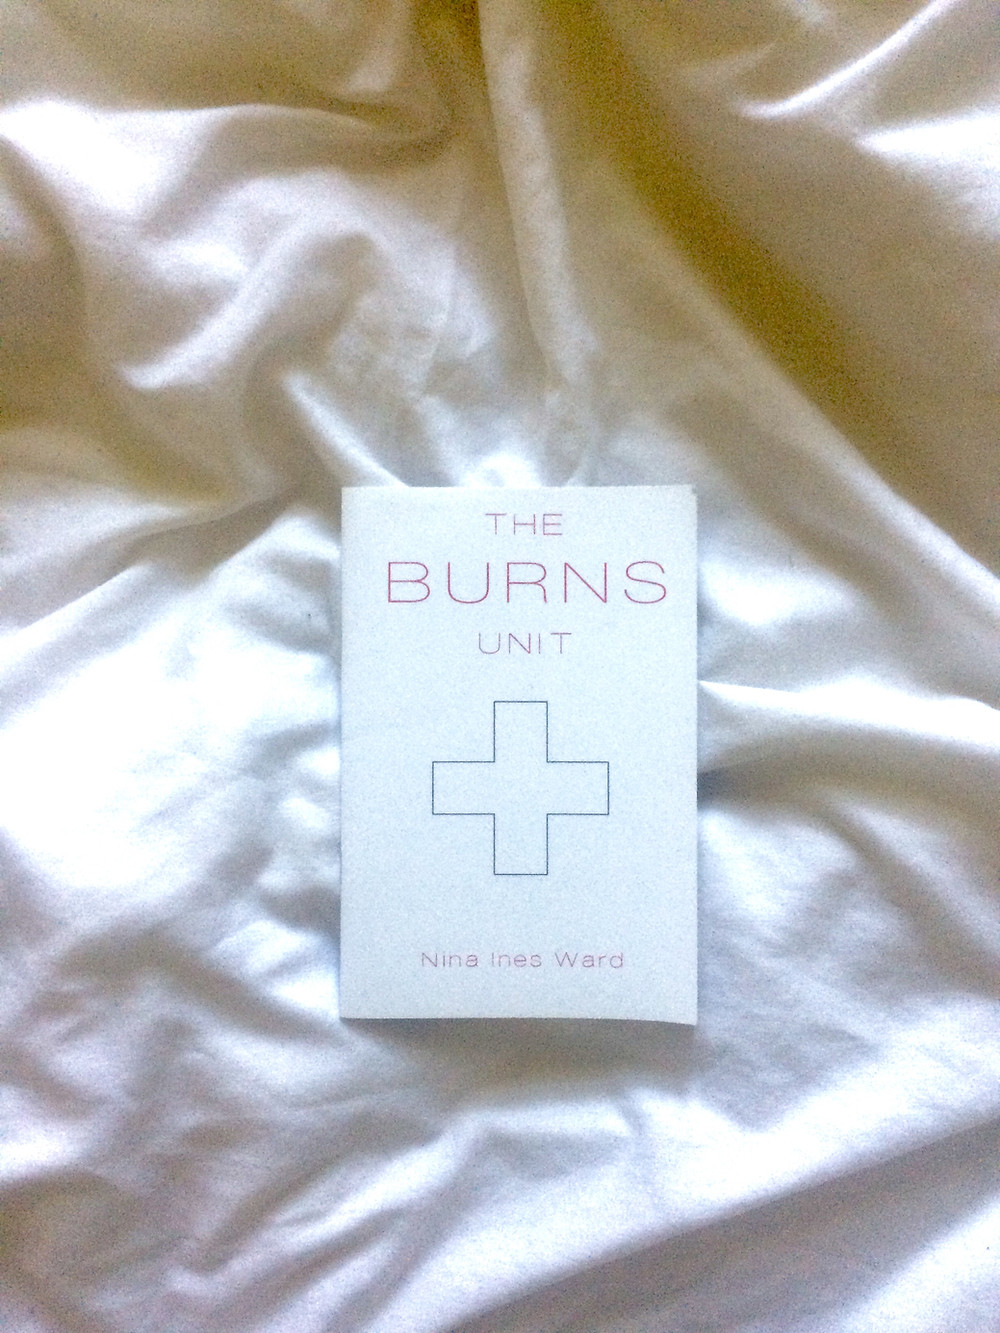 Photo of the pamphlet 'The Burns Unit' by Nick Ines Ward on a white crumpled duvet cover, with natural light shining over. The pamphlet is white with pink writing and the outline of a cross in the centre.